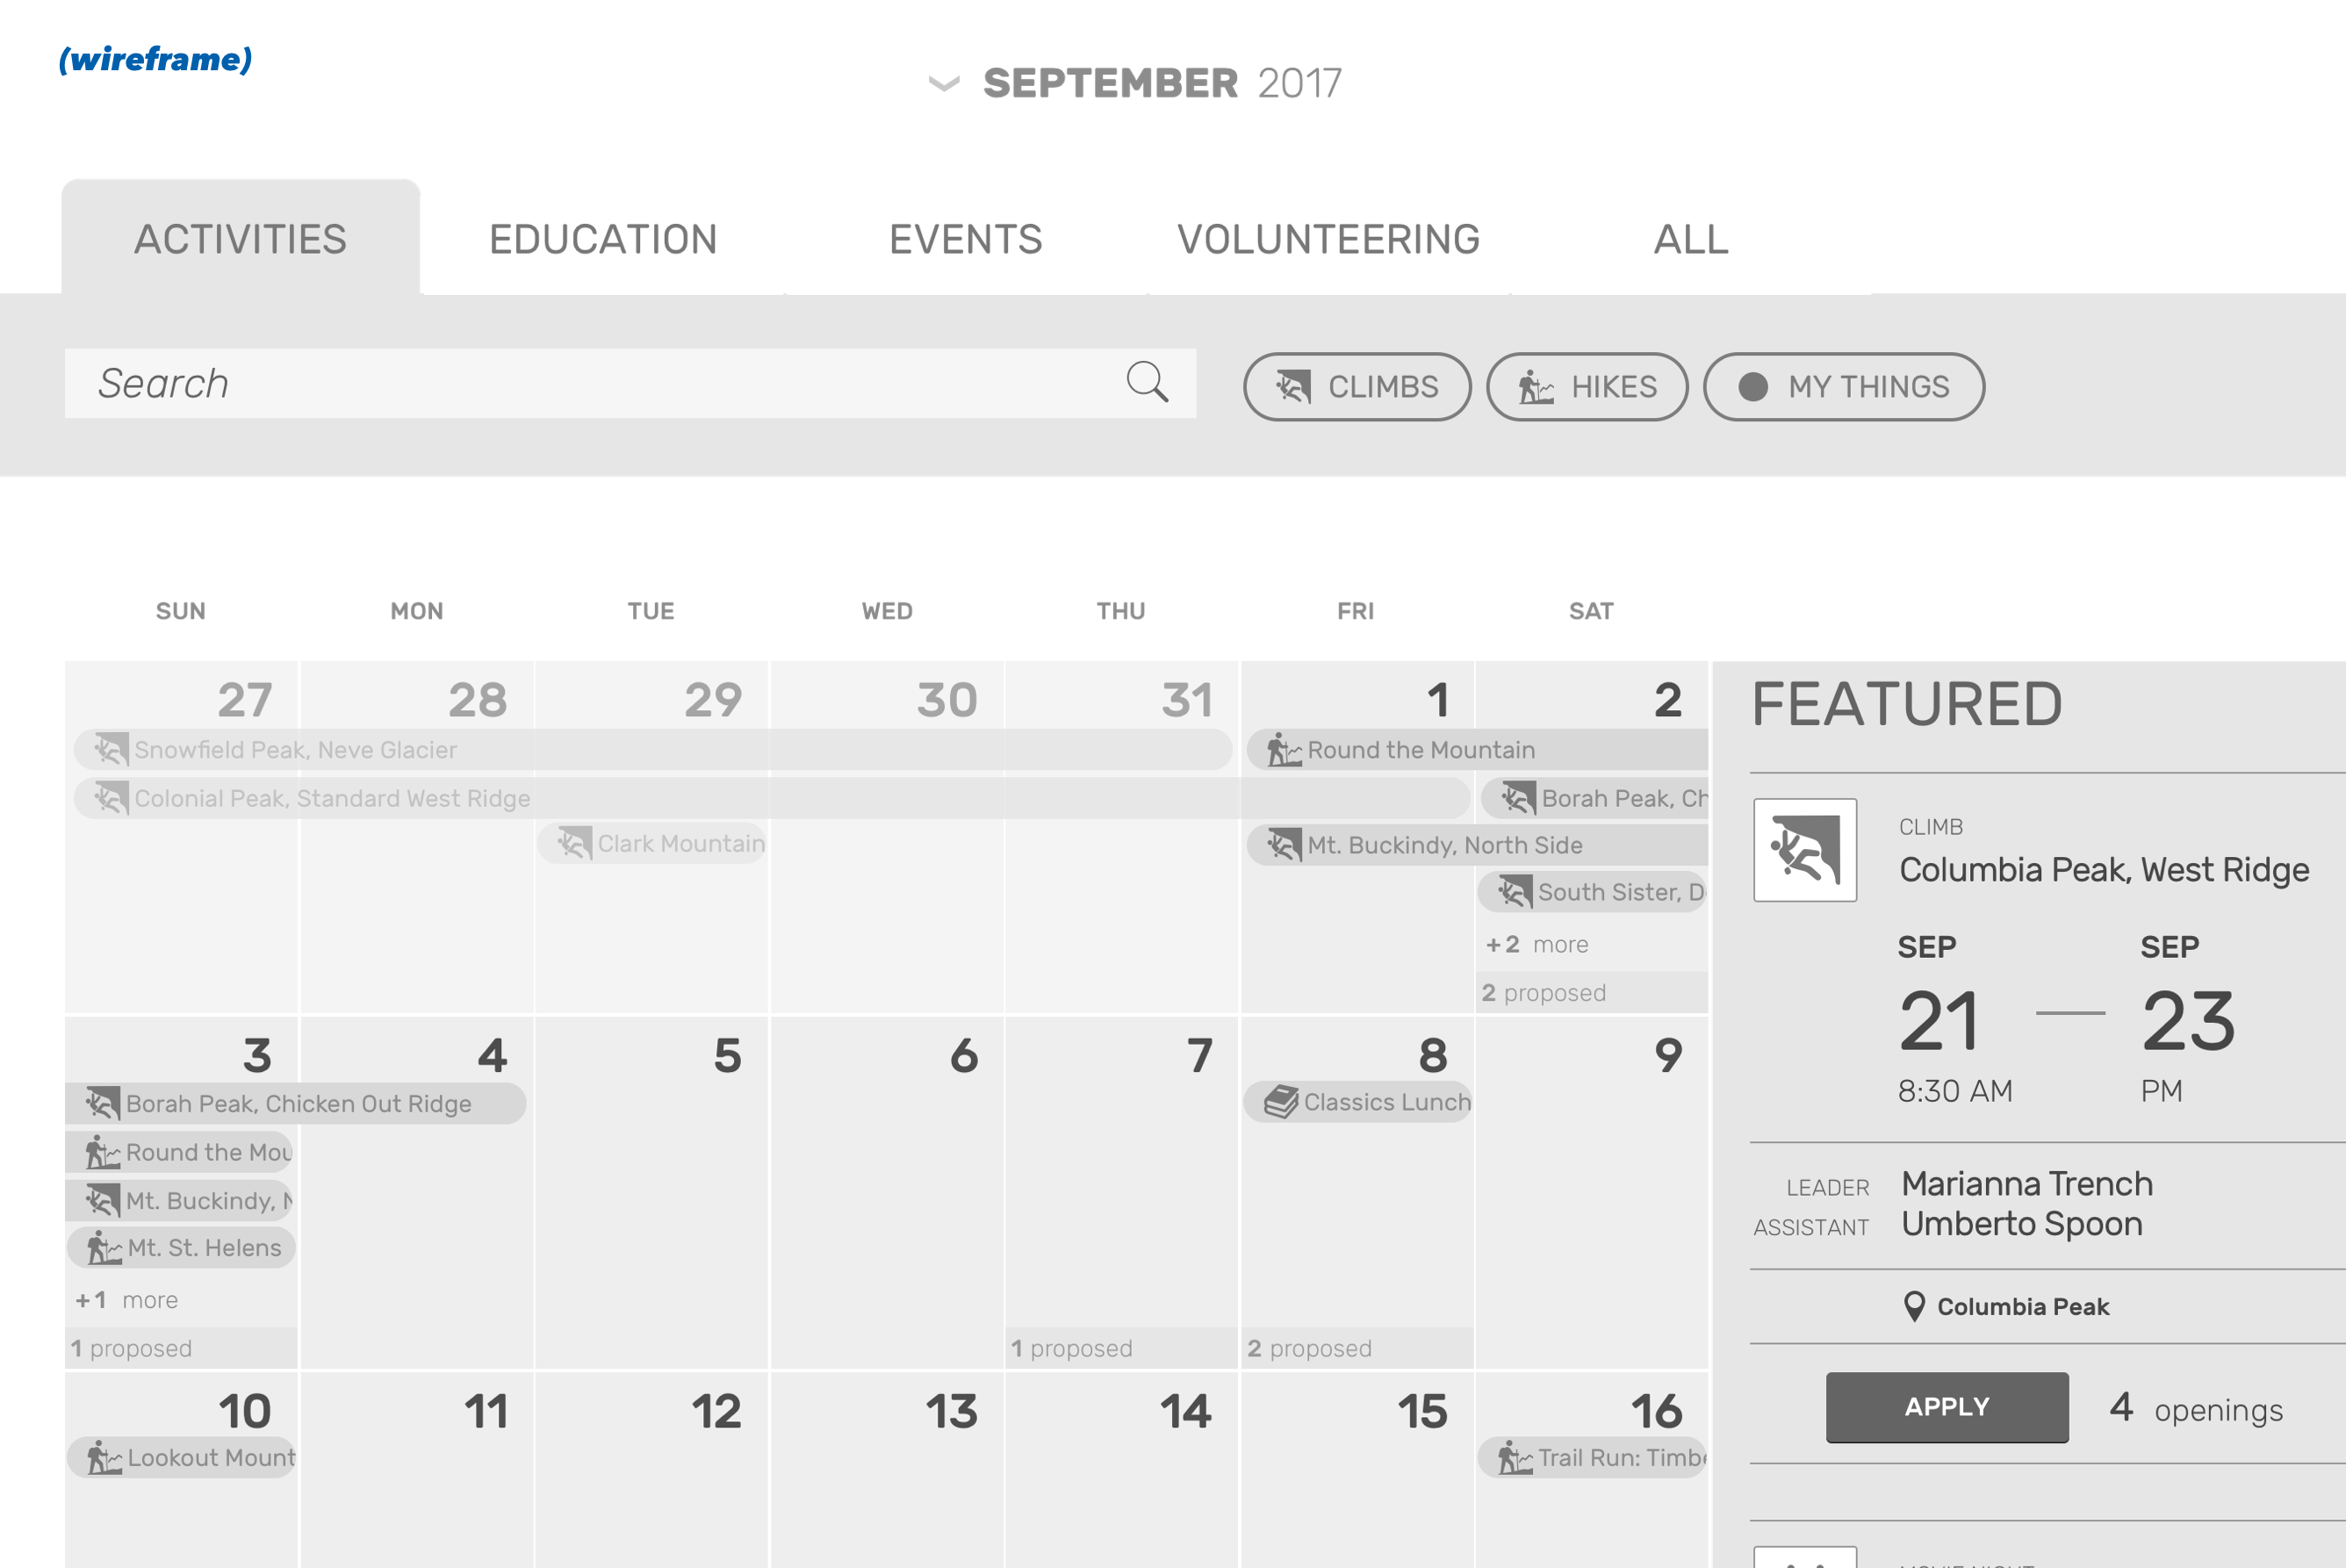 Wireframe: Mazamas calendar of activities